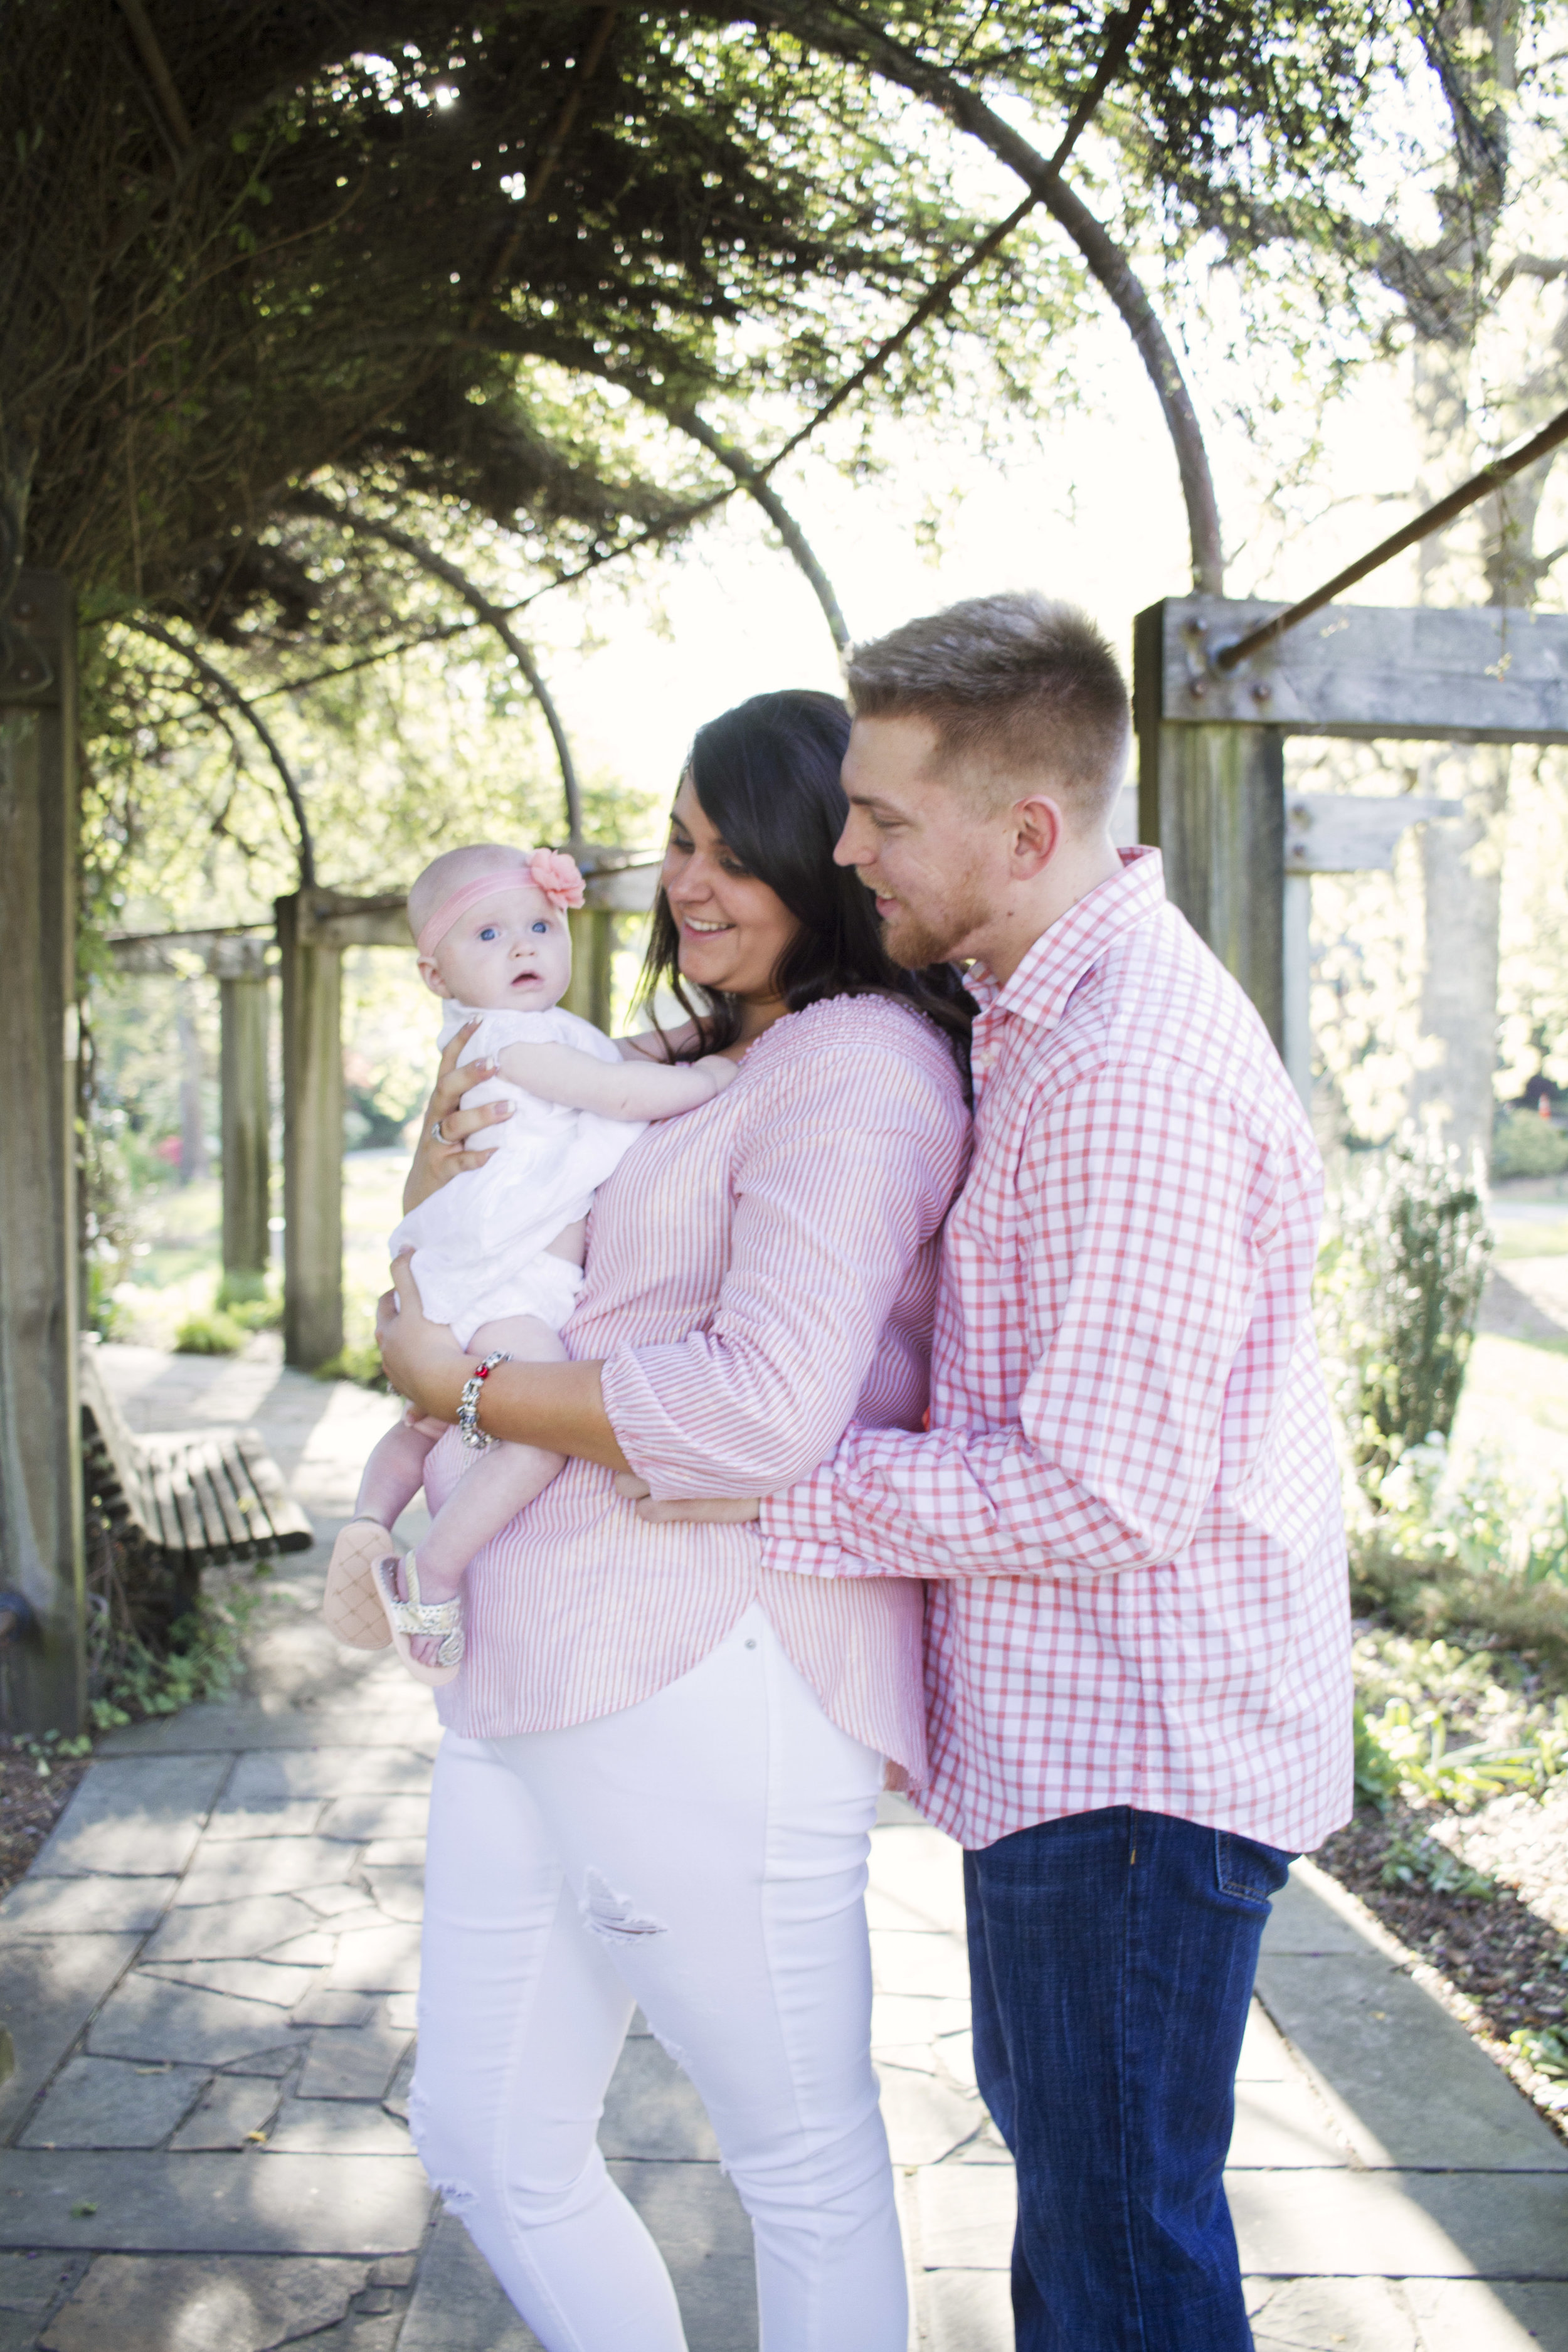 Family Newborn Portraits in Greensboro Arboretum by Kayli LaFon Photography